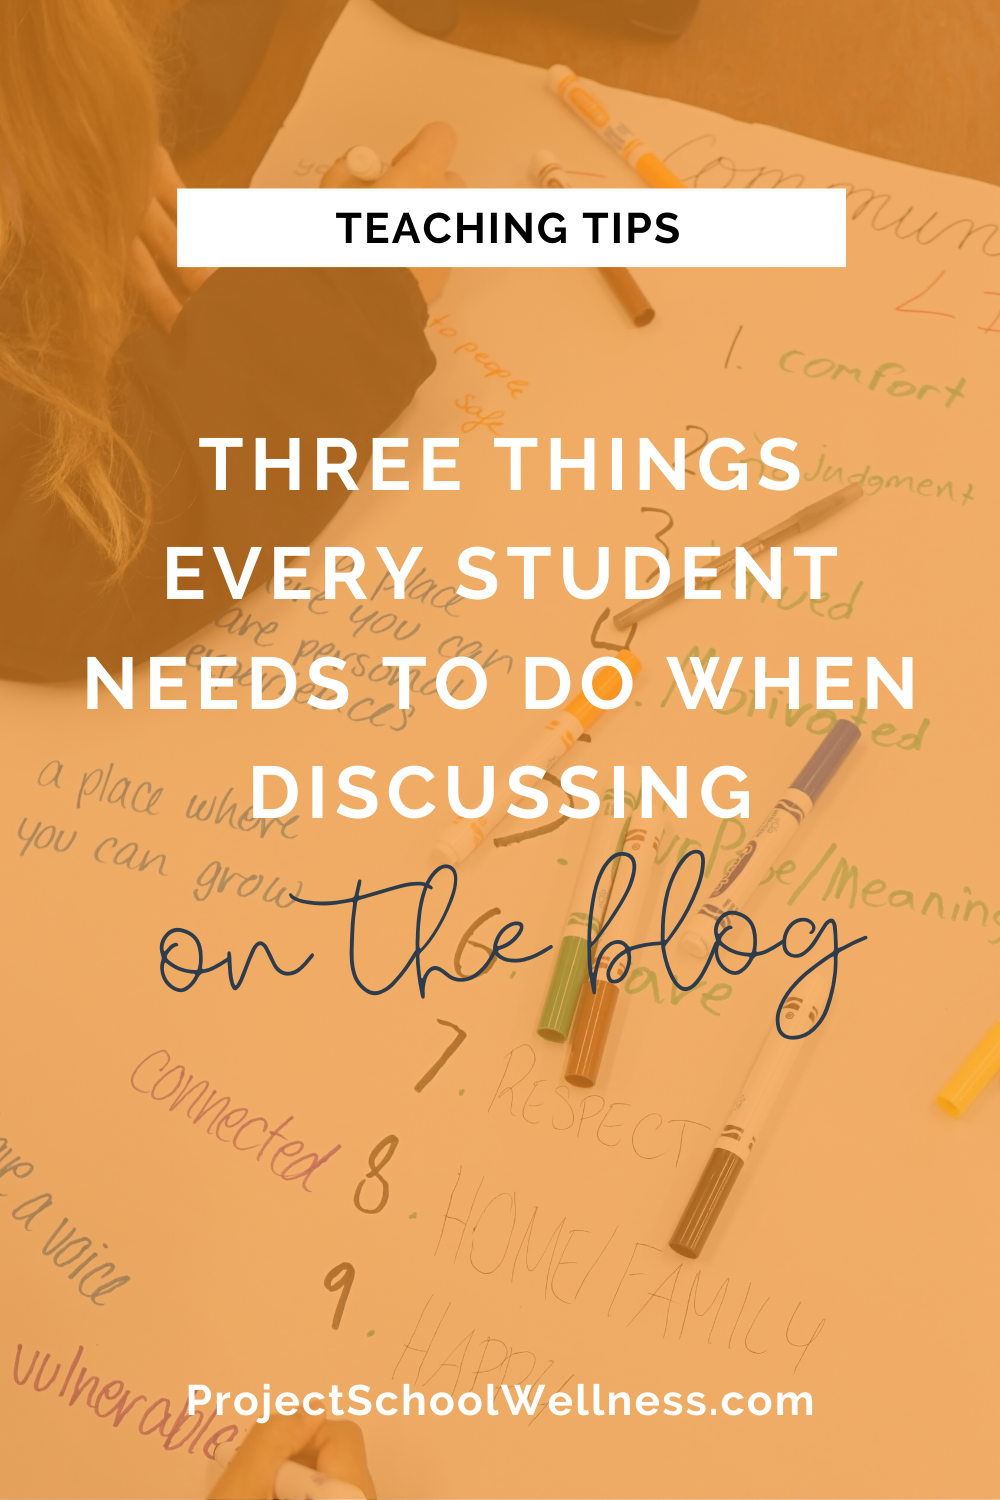 Health Education Blog - Three things EVERY students need to do when discussion - Teaching tips for better classroom discussion - Project School Wellness